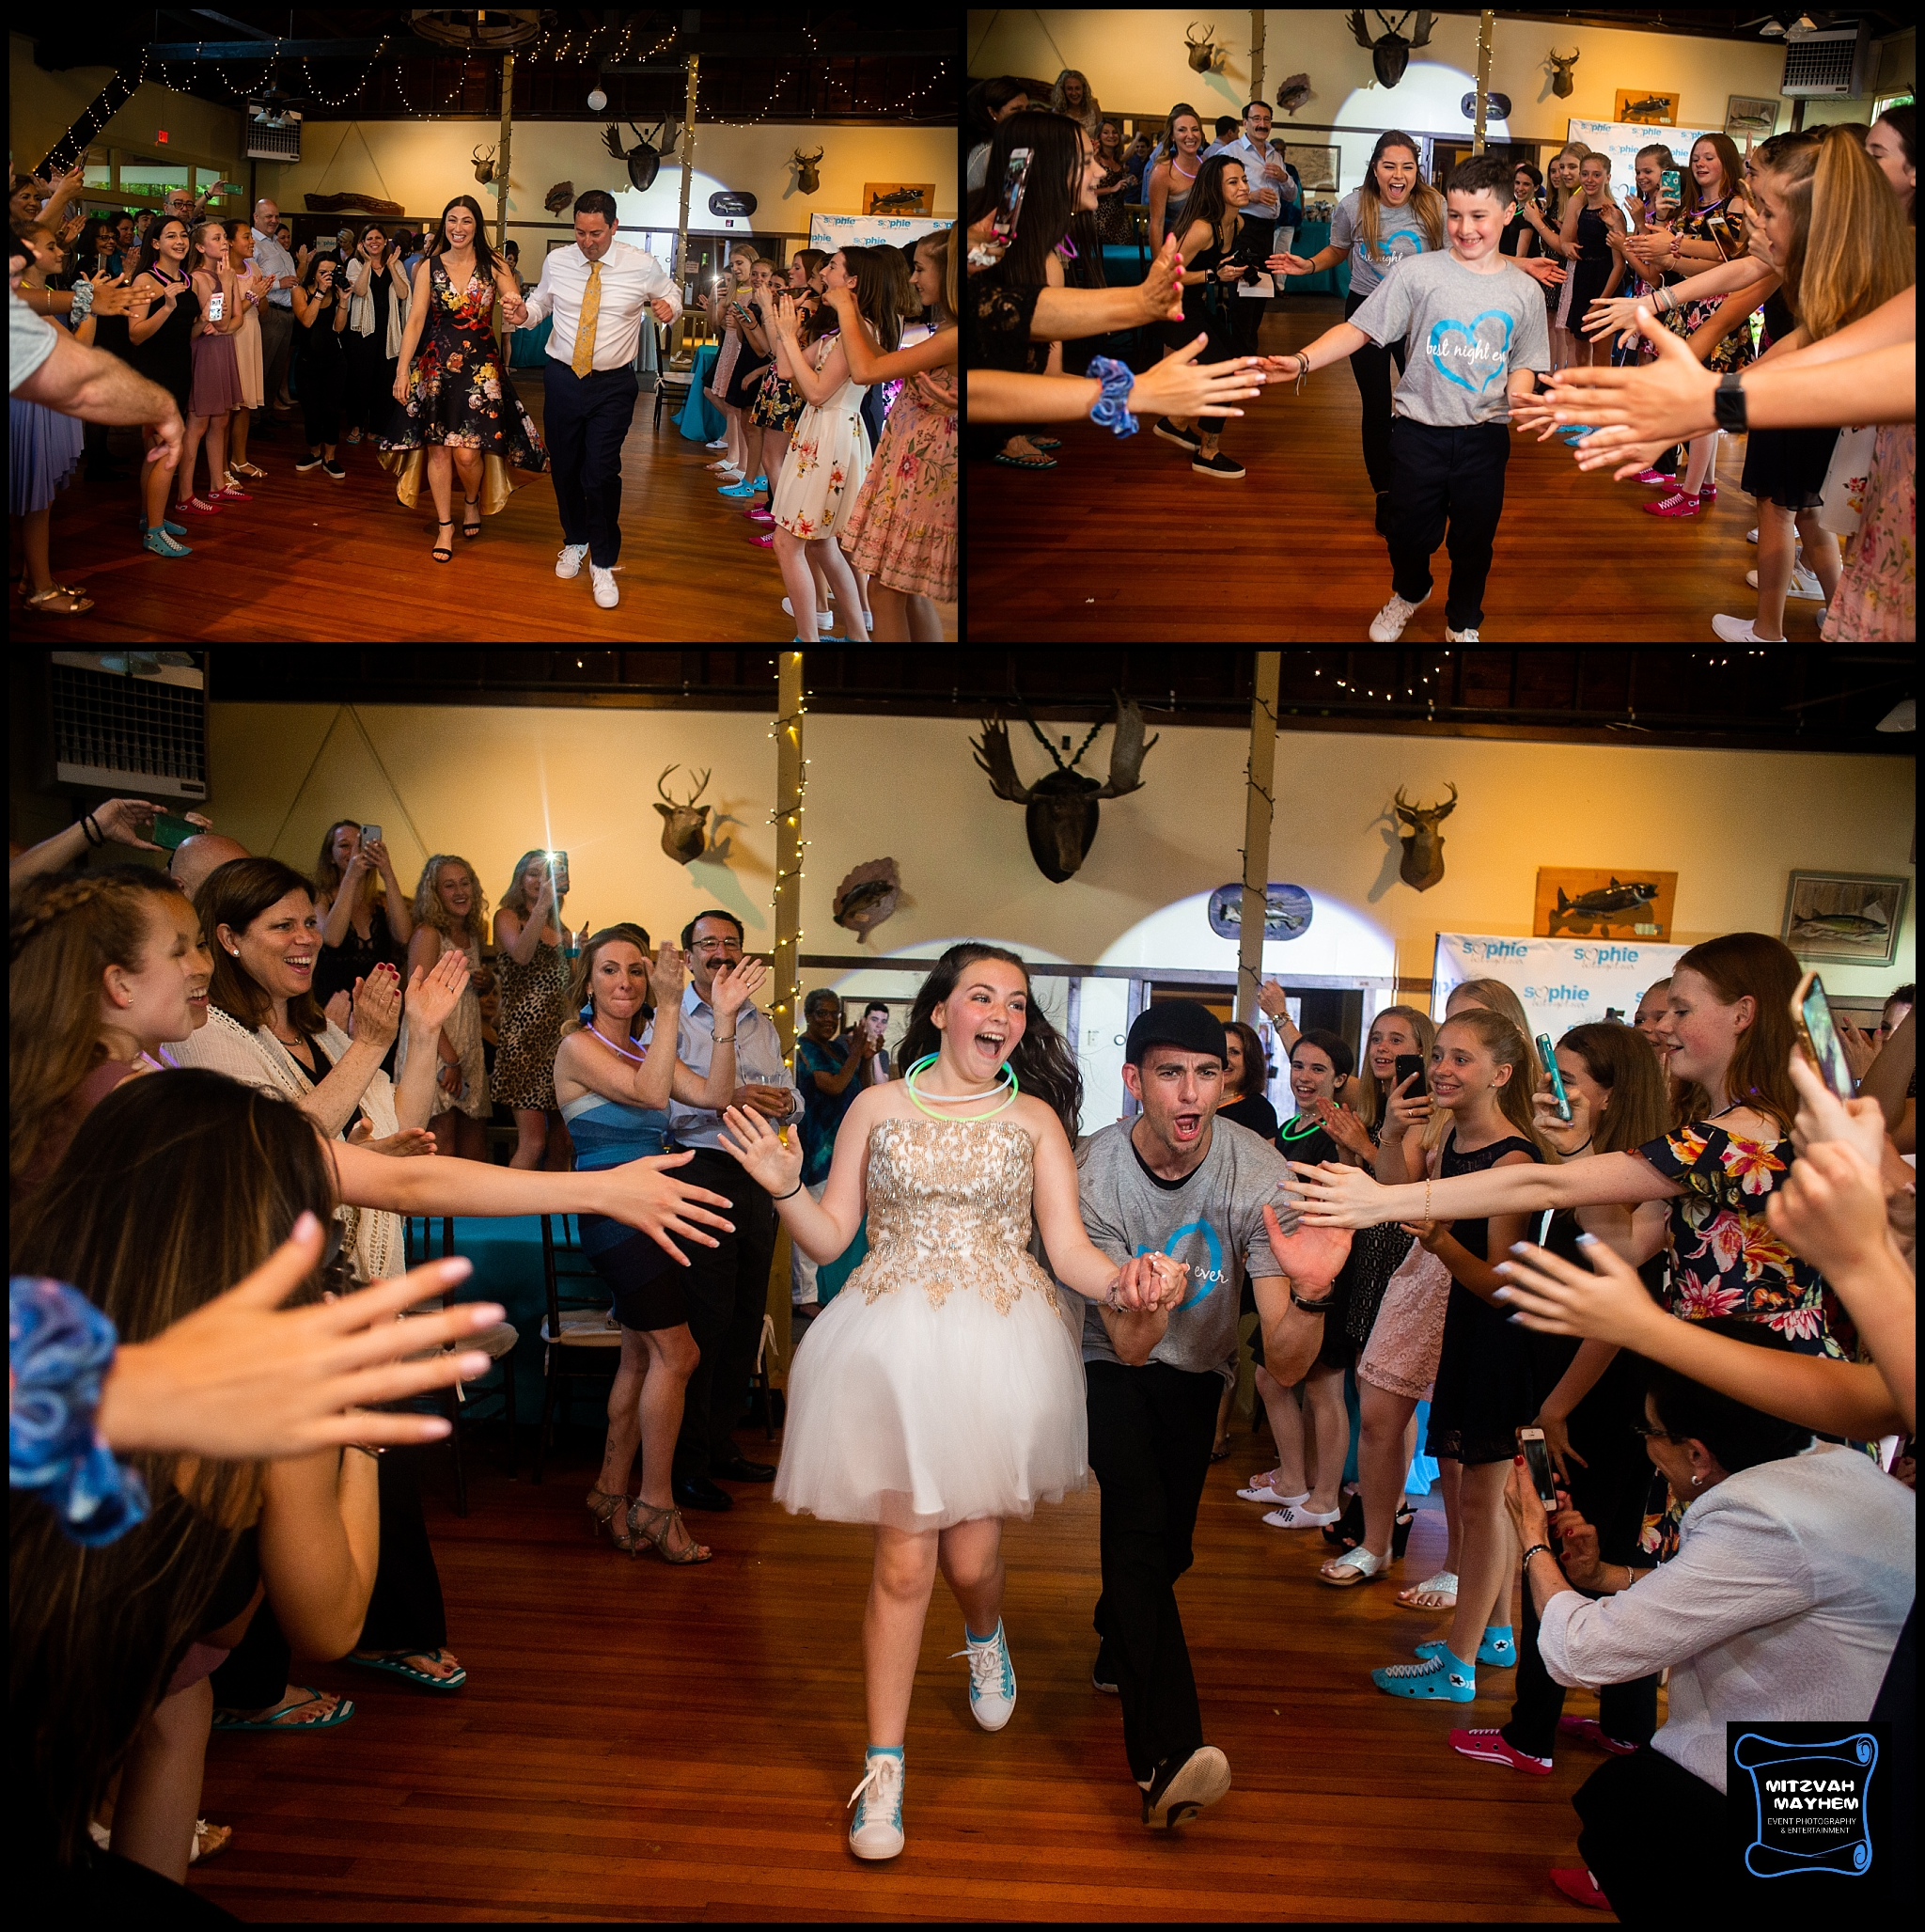 NJ-bat-mitzvah-mayhem-photography (6).jpg